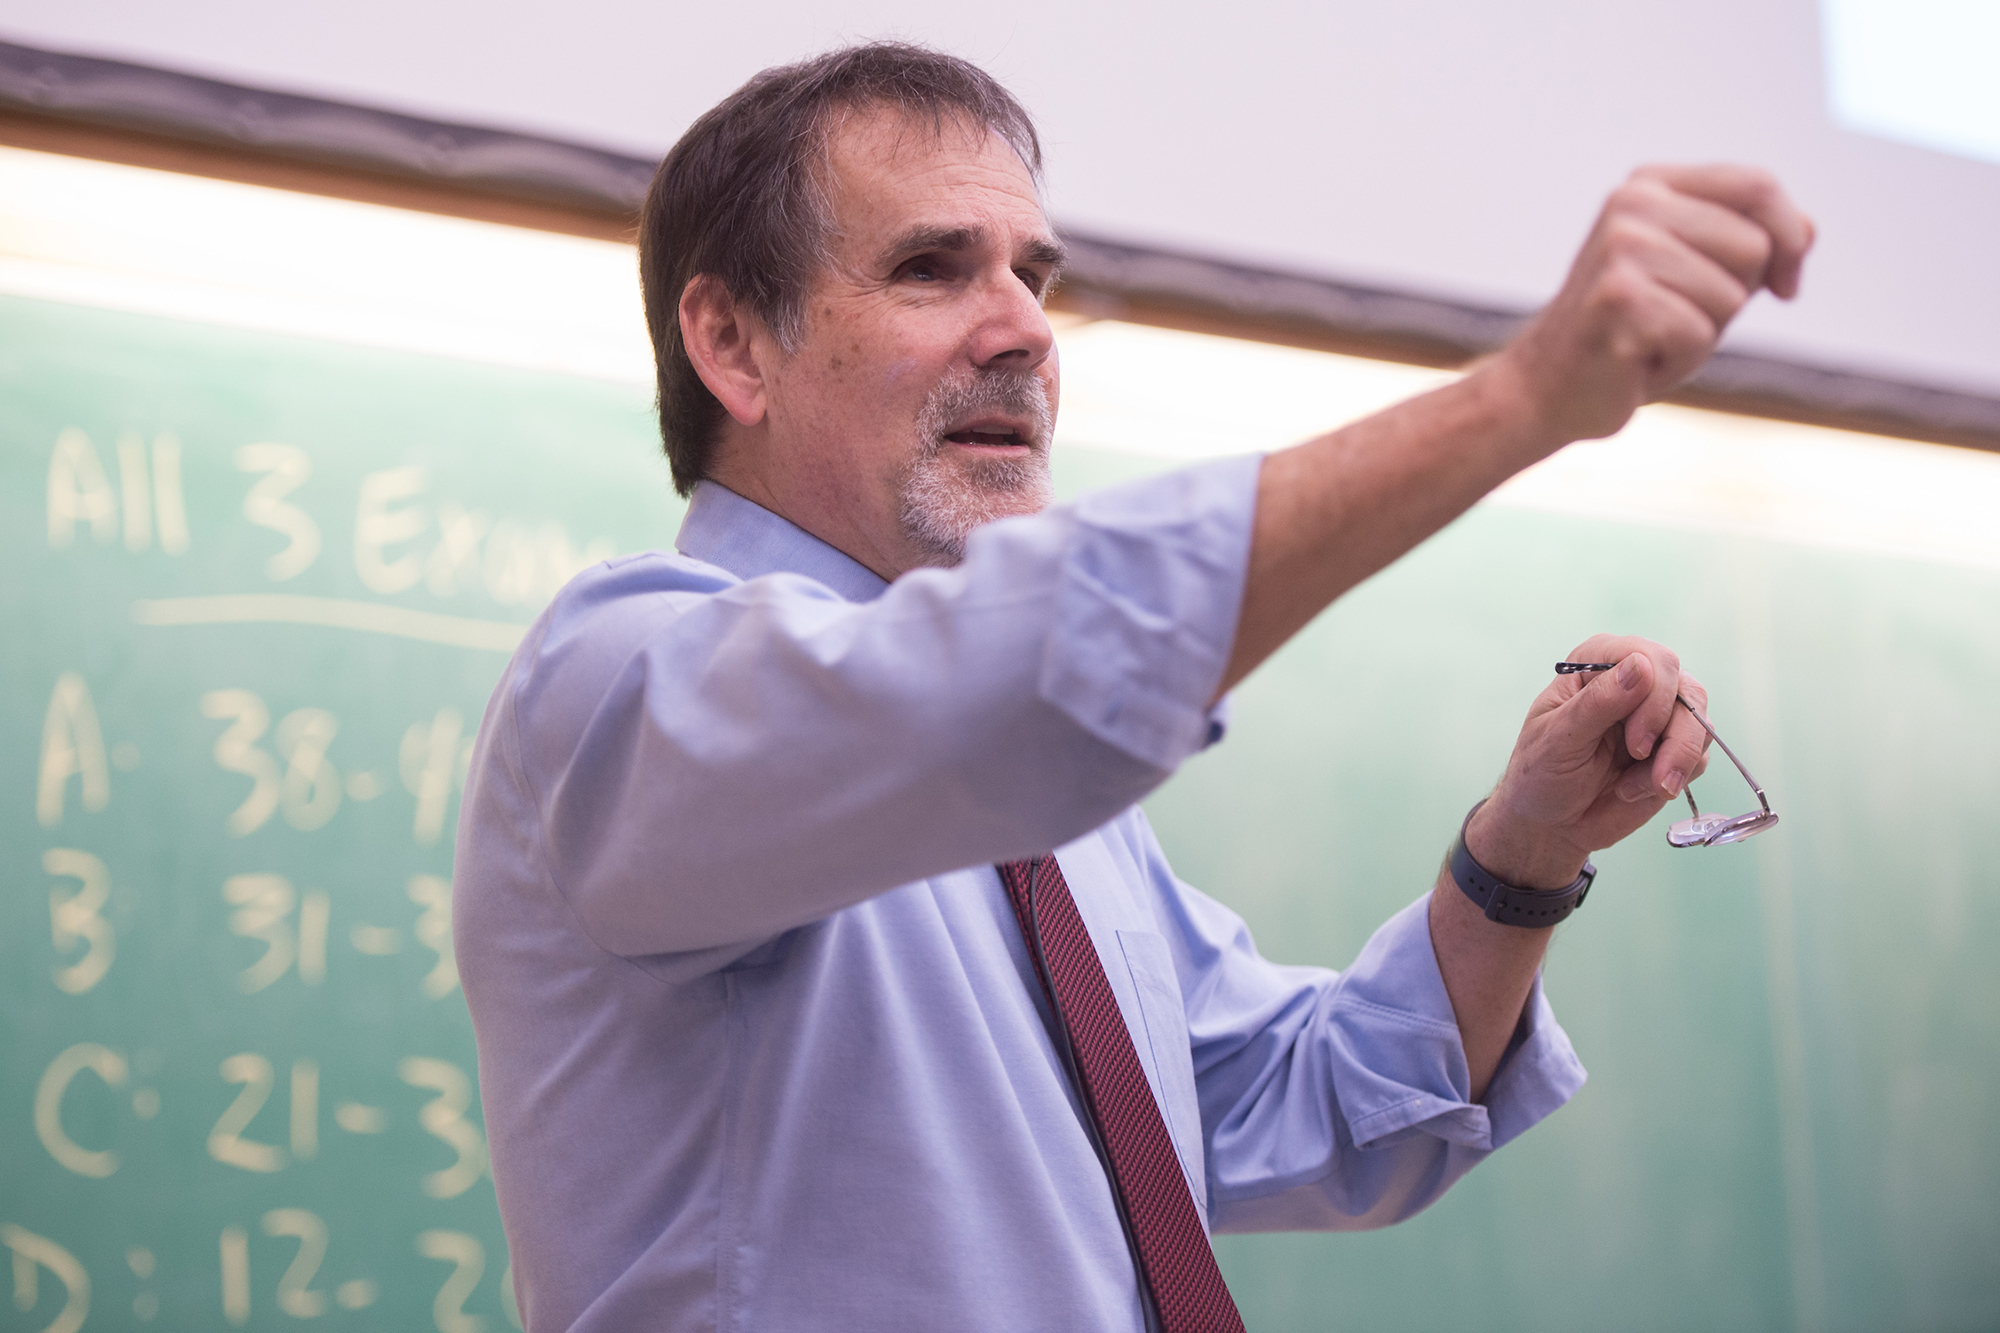 university of iowa physics and astronomy faculty member Craig Kletzing at the front of a classroom